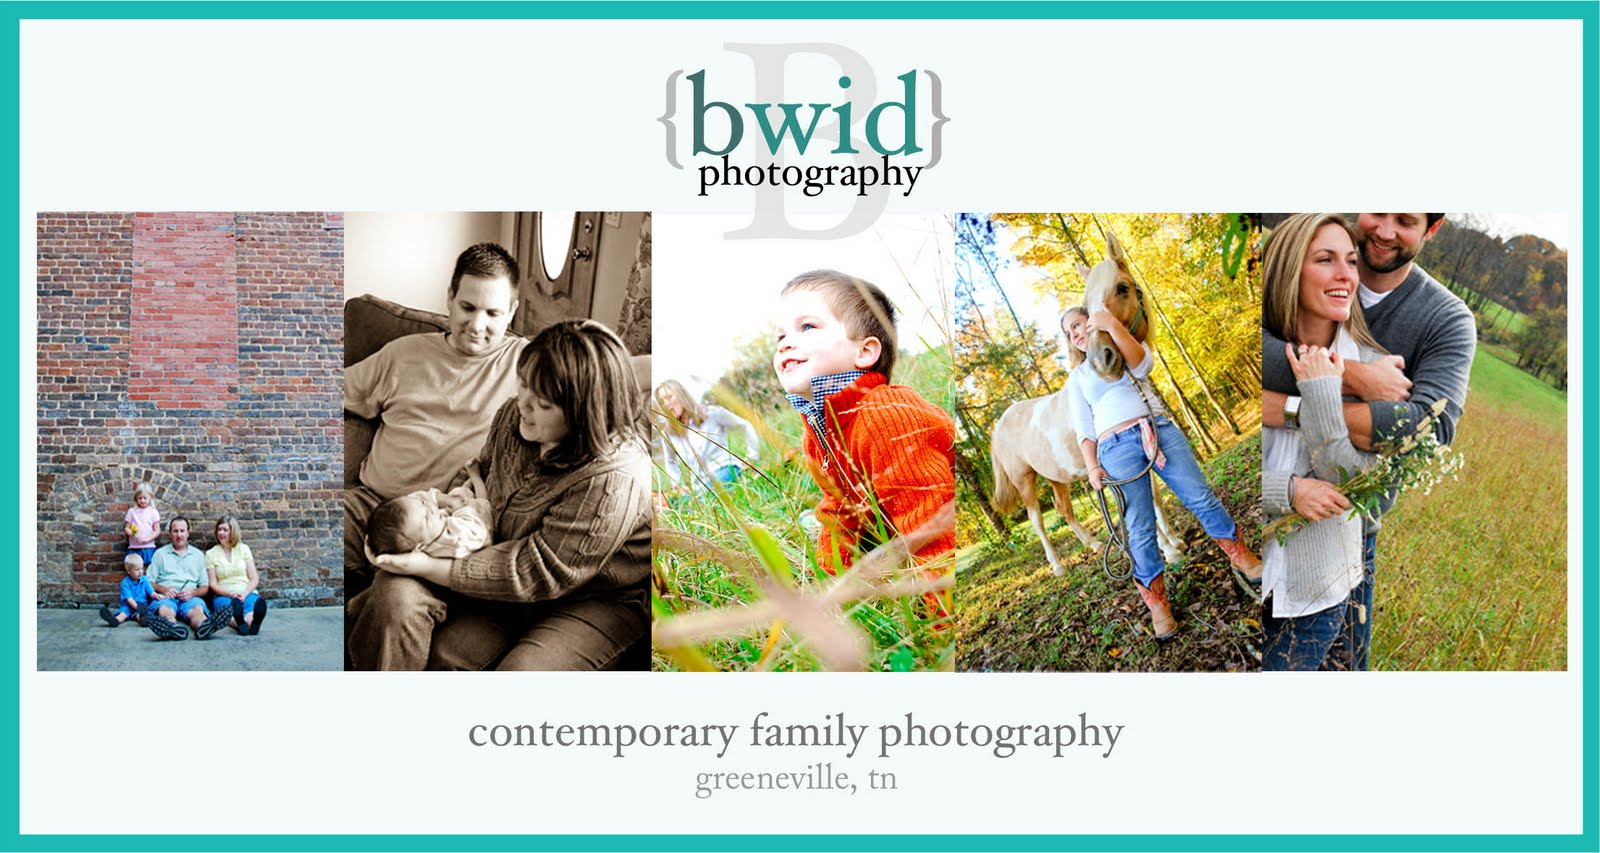 b wid photography